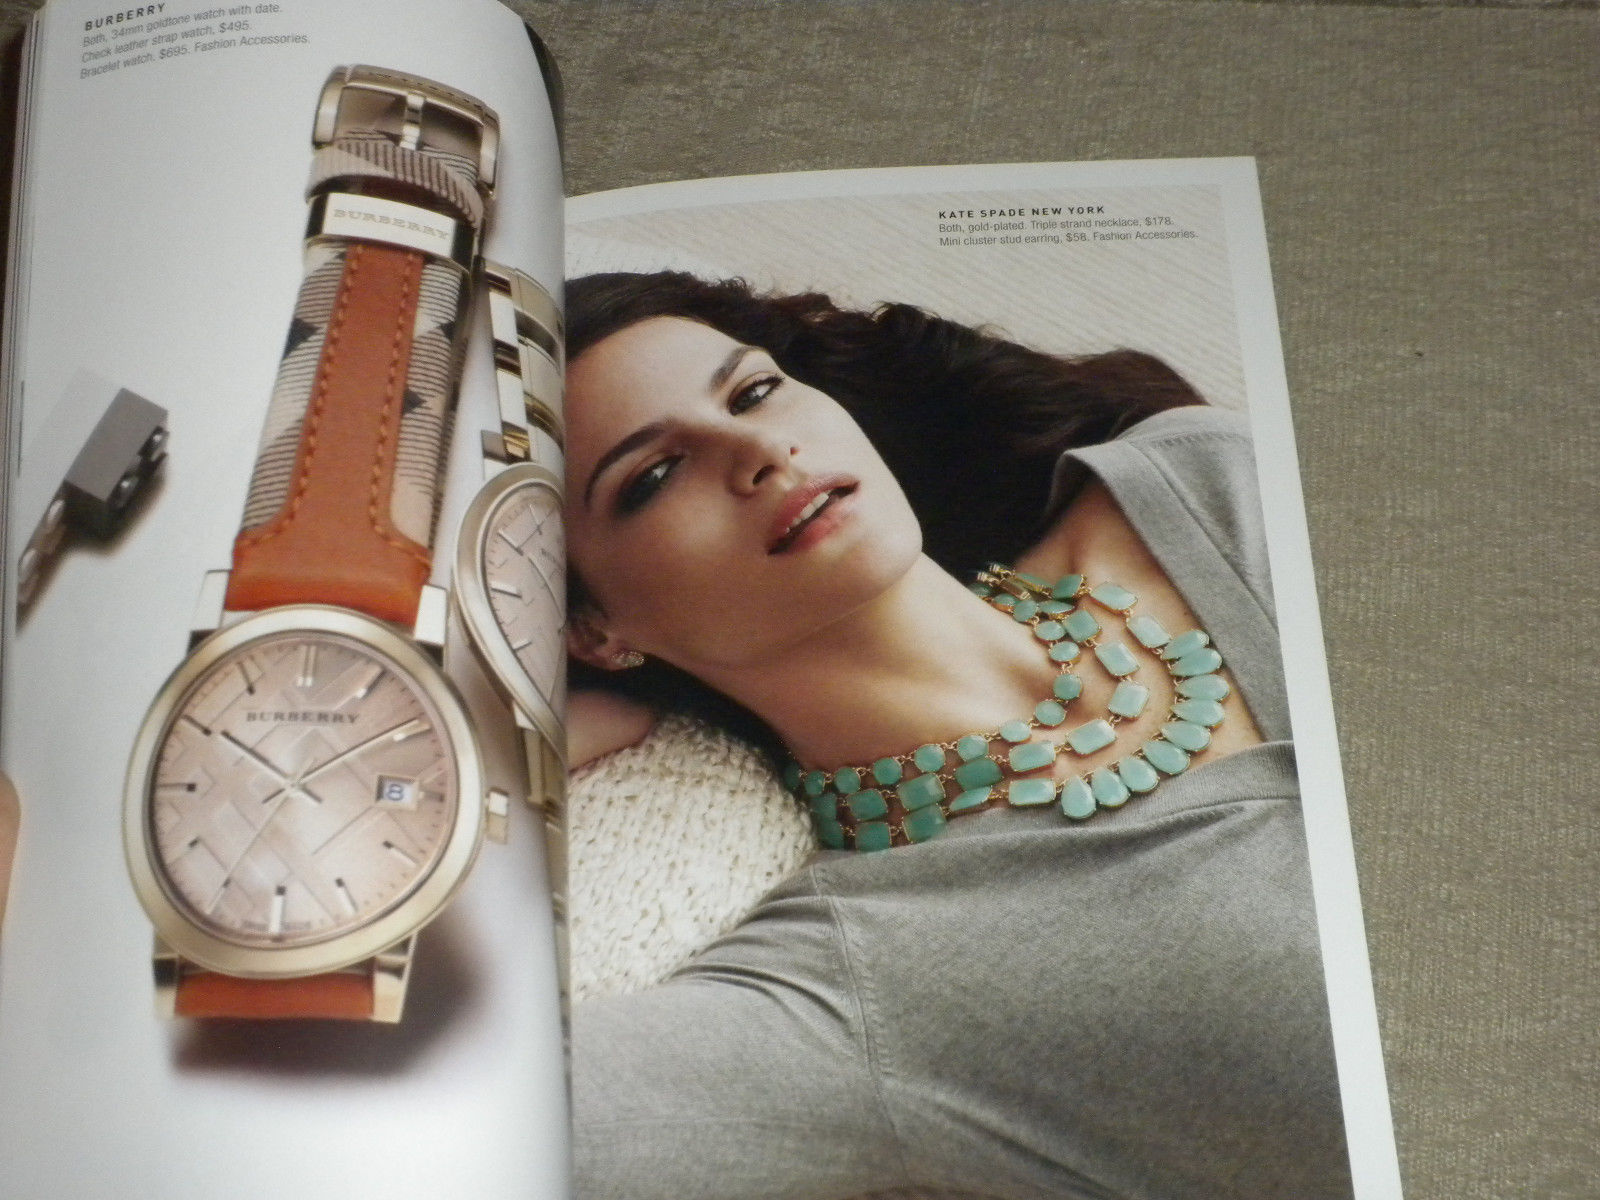 Bloomingdales w model Missy Rayder in New York Mothers Day Fashion catalog 2014